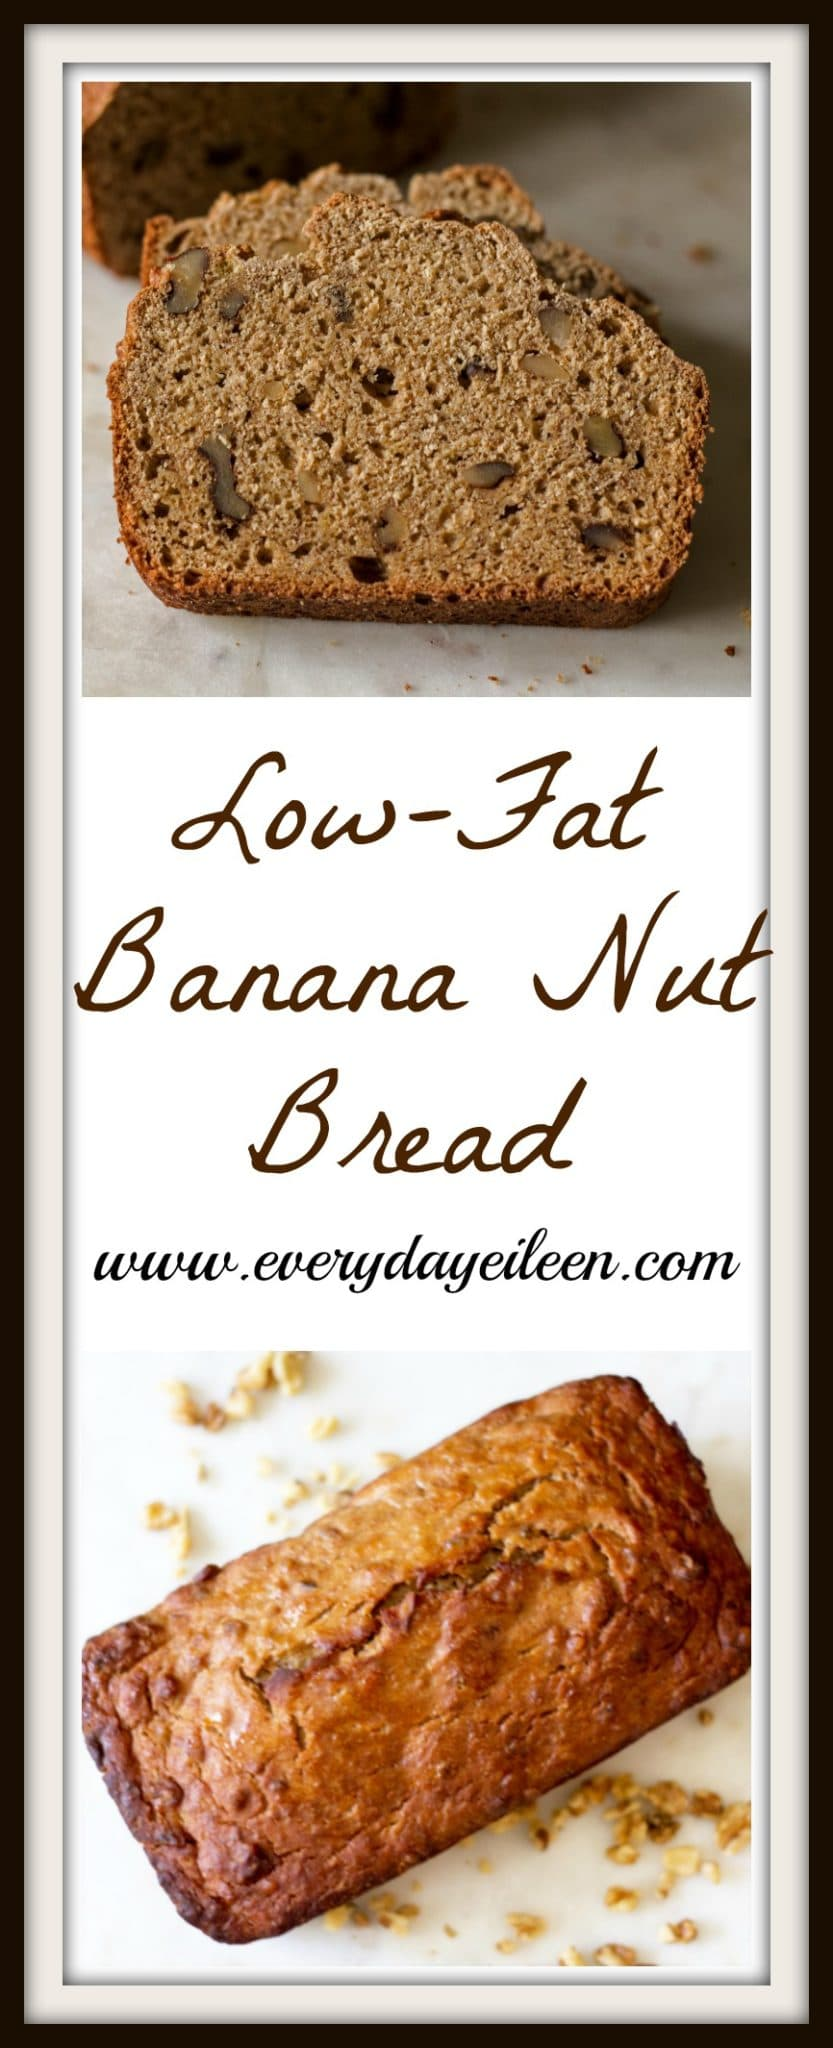 Low-Fat Banana Nut Bread - Everyday Eileen